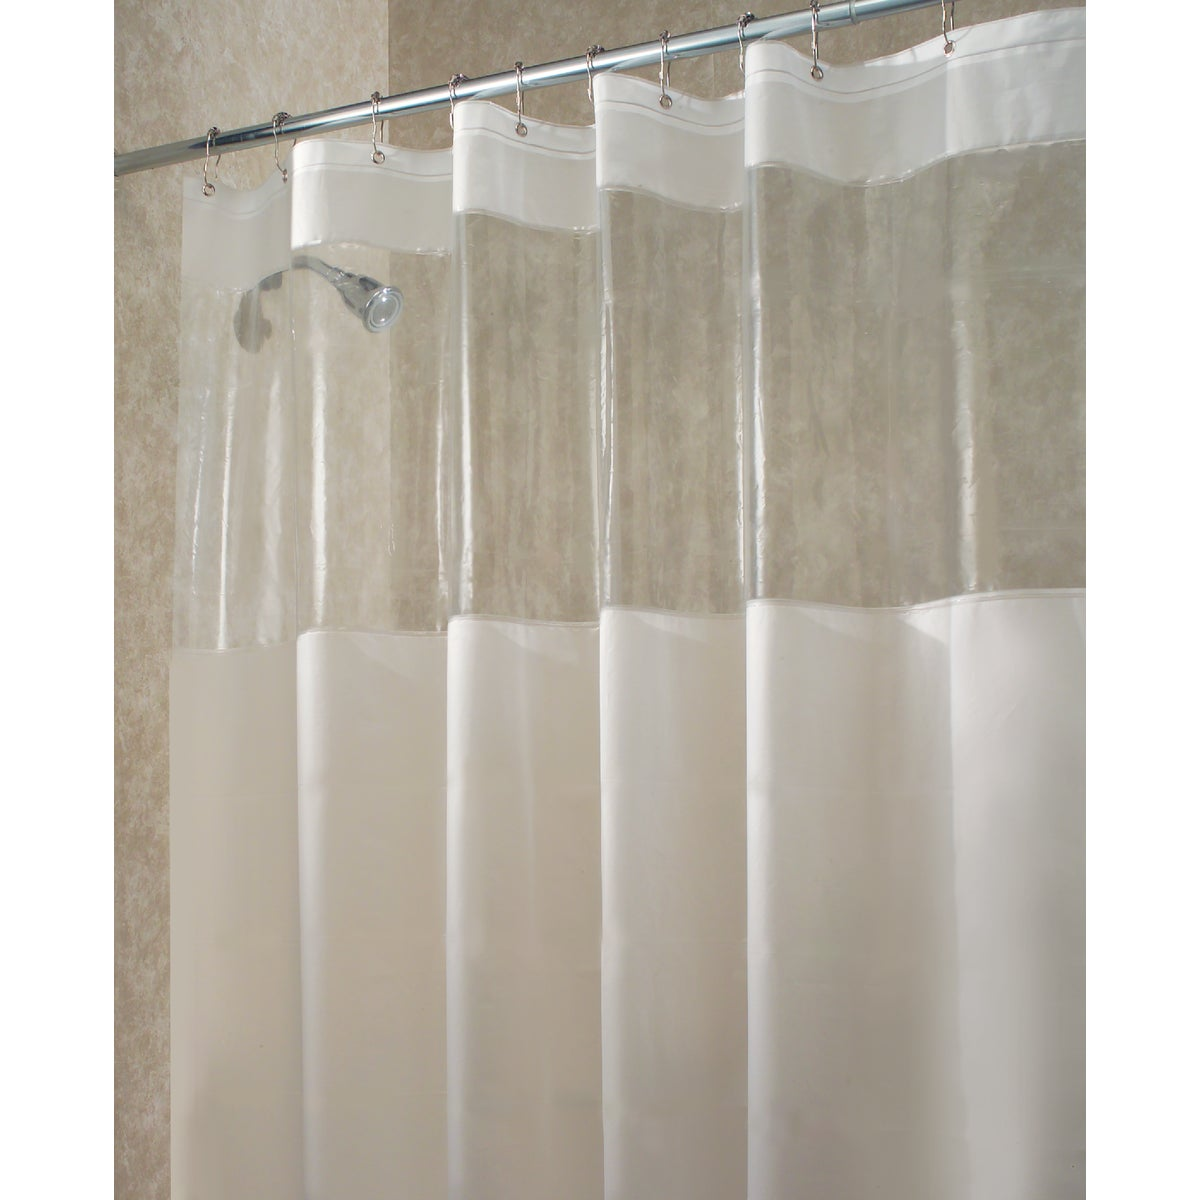 HITCHCOCK SHWR CURTAIN - 26680 by Interdesign Inc